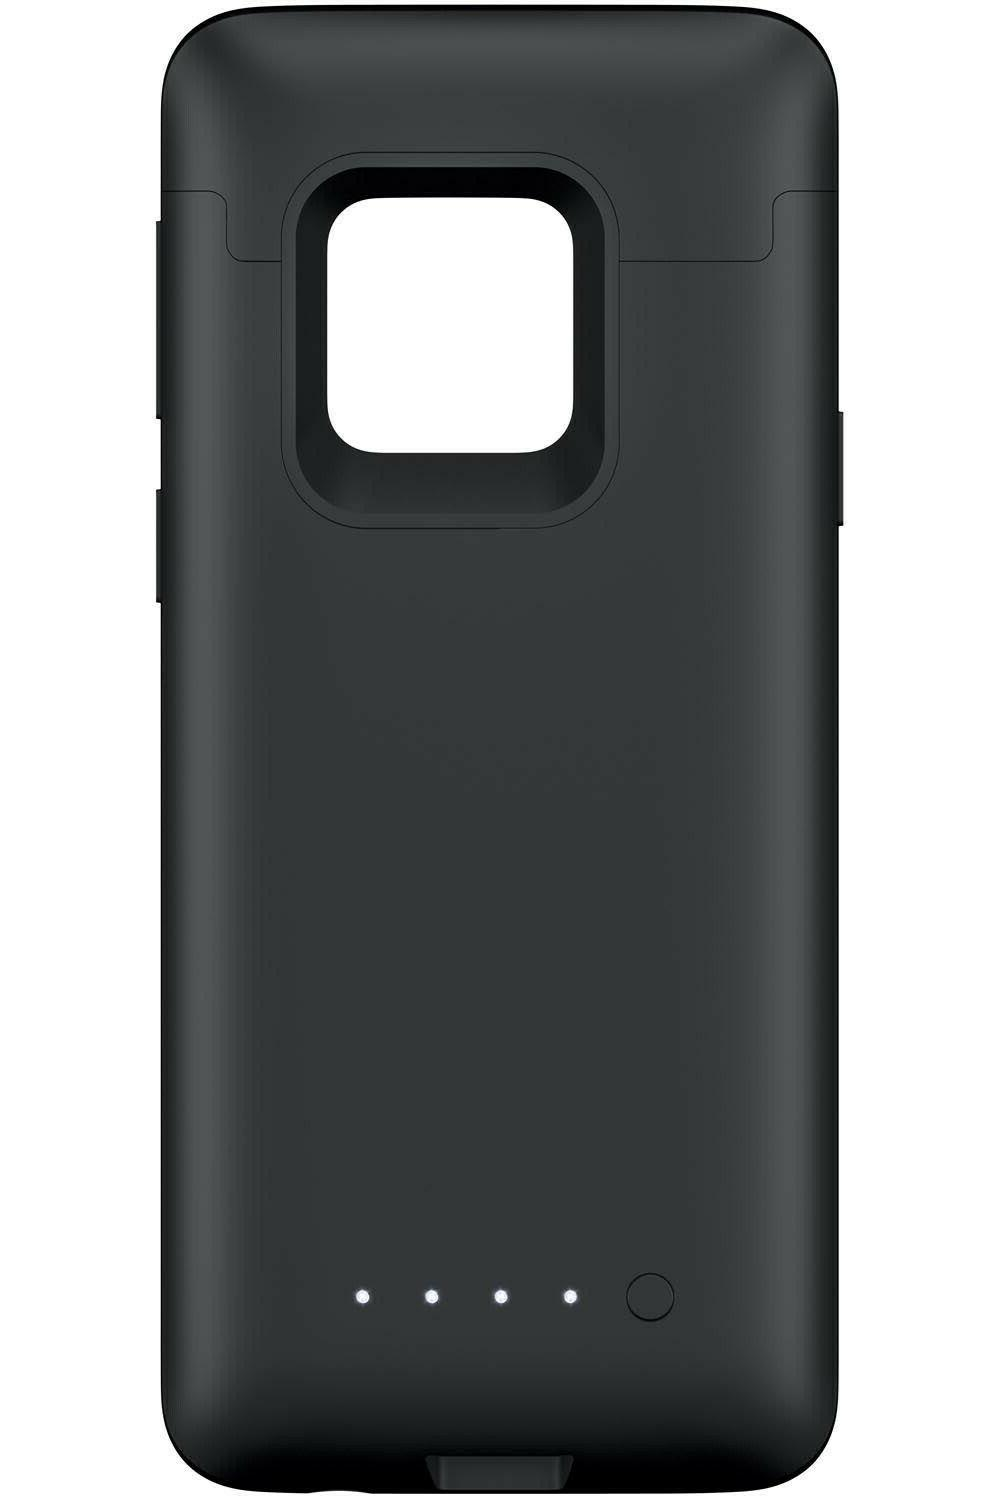 Mophie Pack Made for NEW